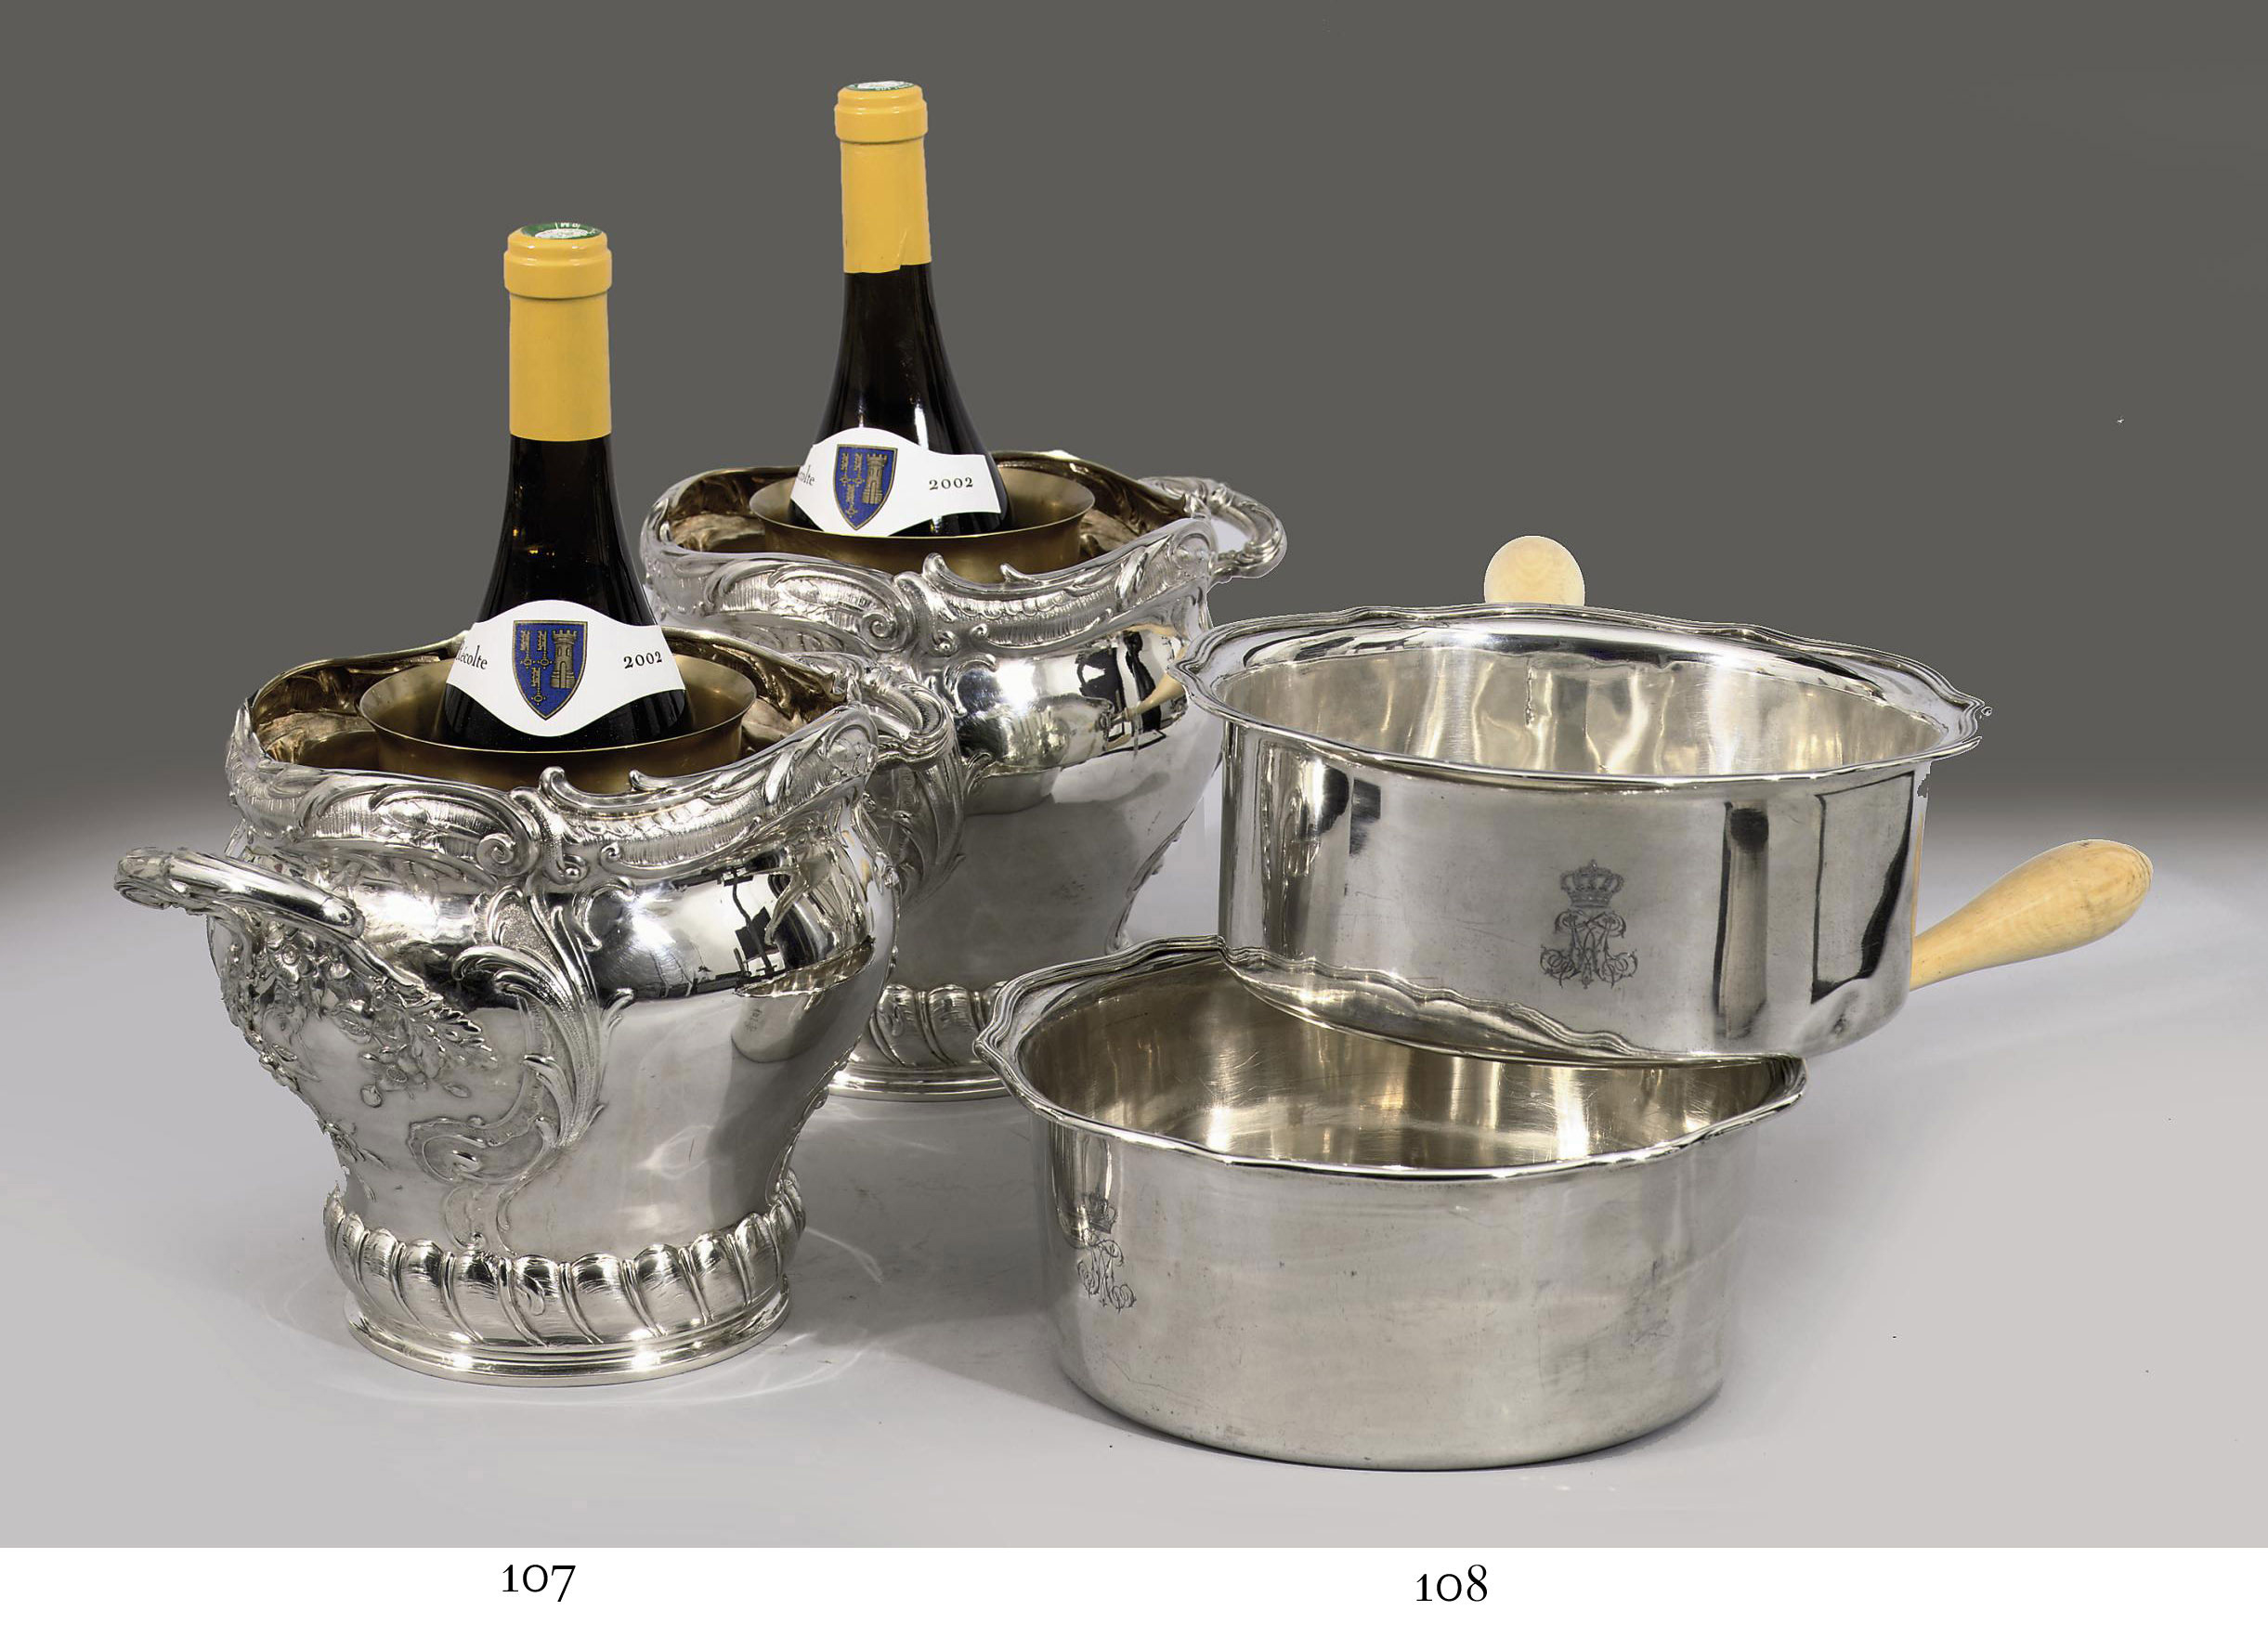 German Silver Wine Cooler After Meissonnier in 2020 ... |German Wine Refrigerator